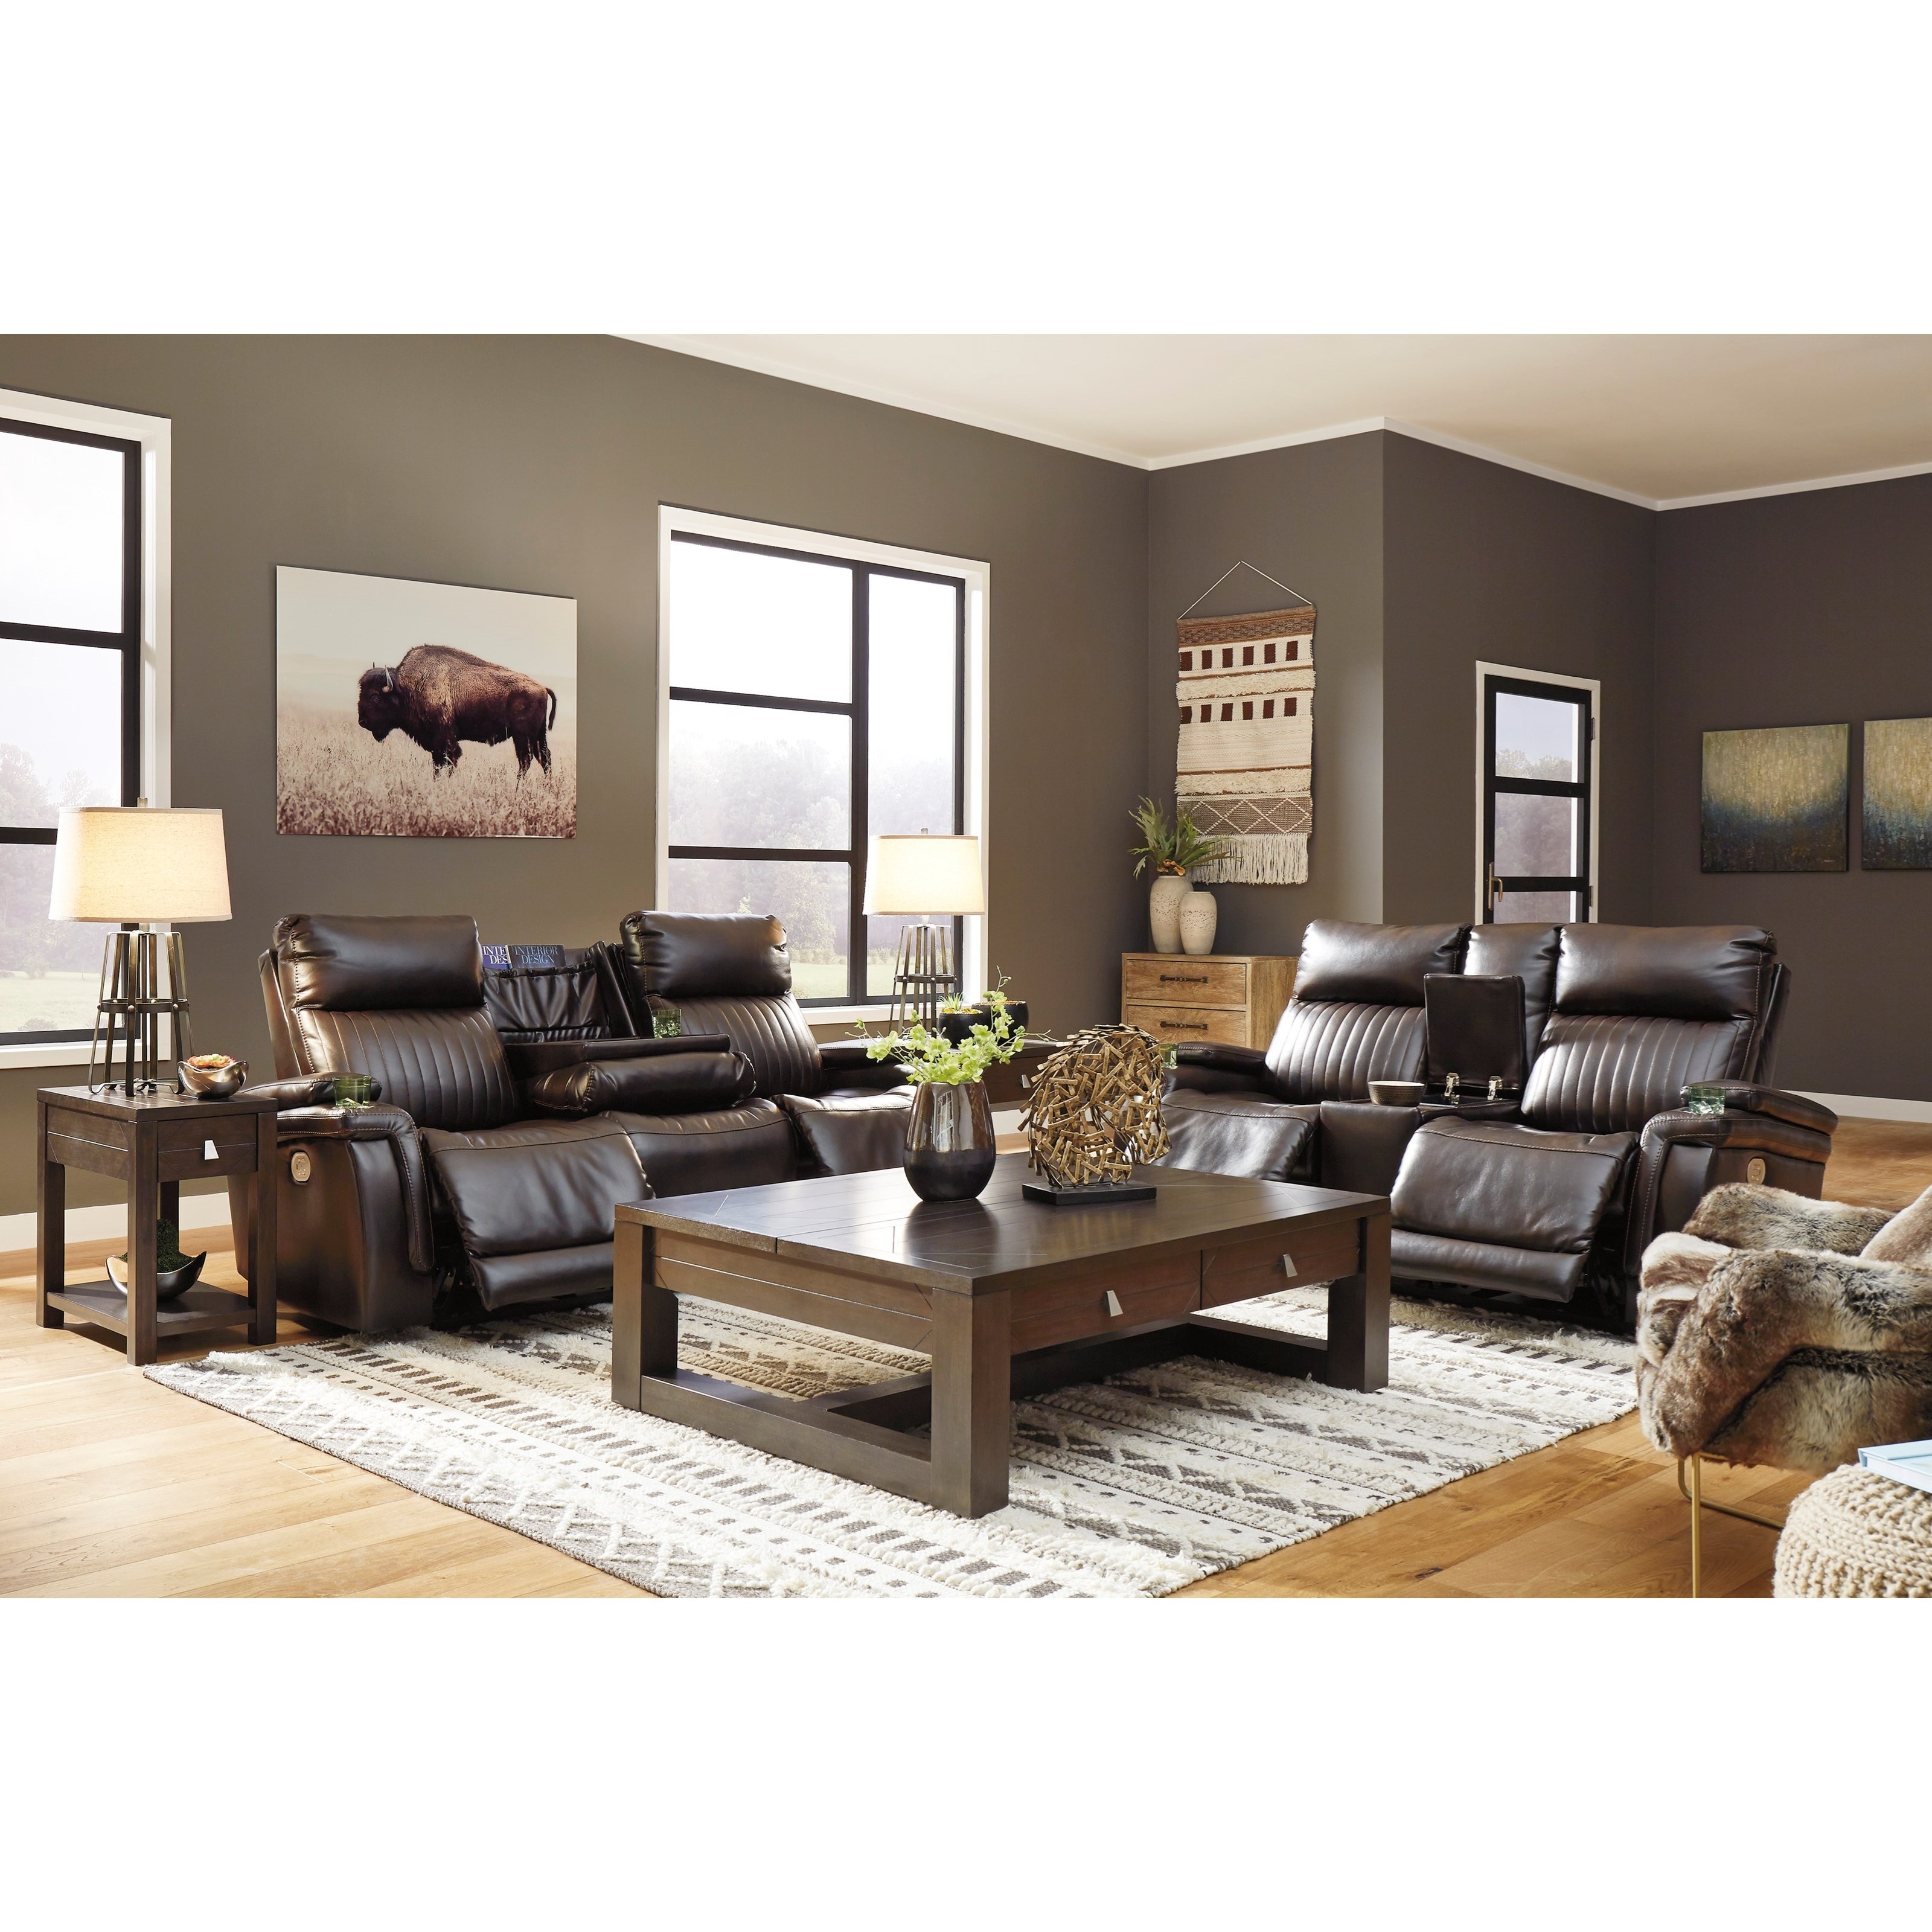 Team Time Reclining Living Room Group by Vendor 3 at Becker Furniture